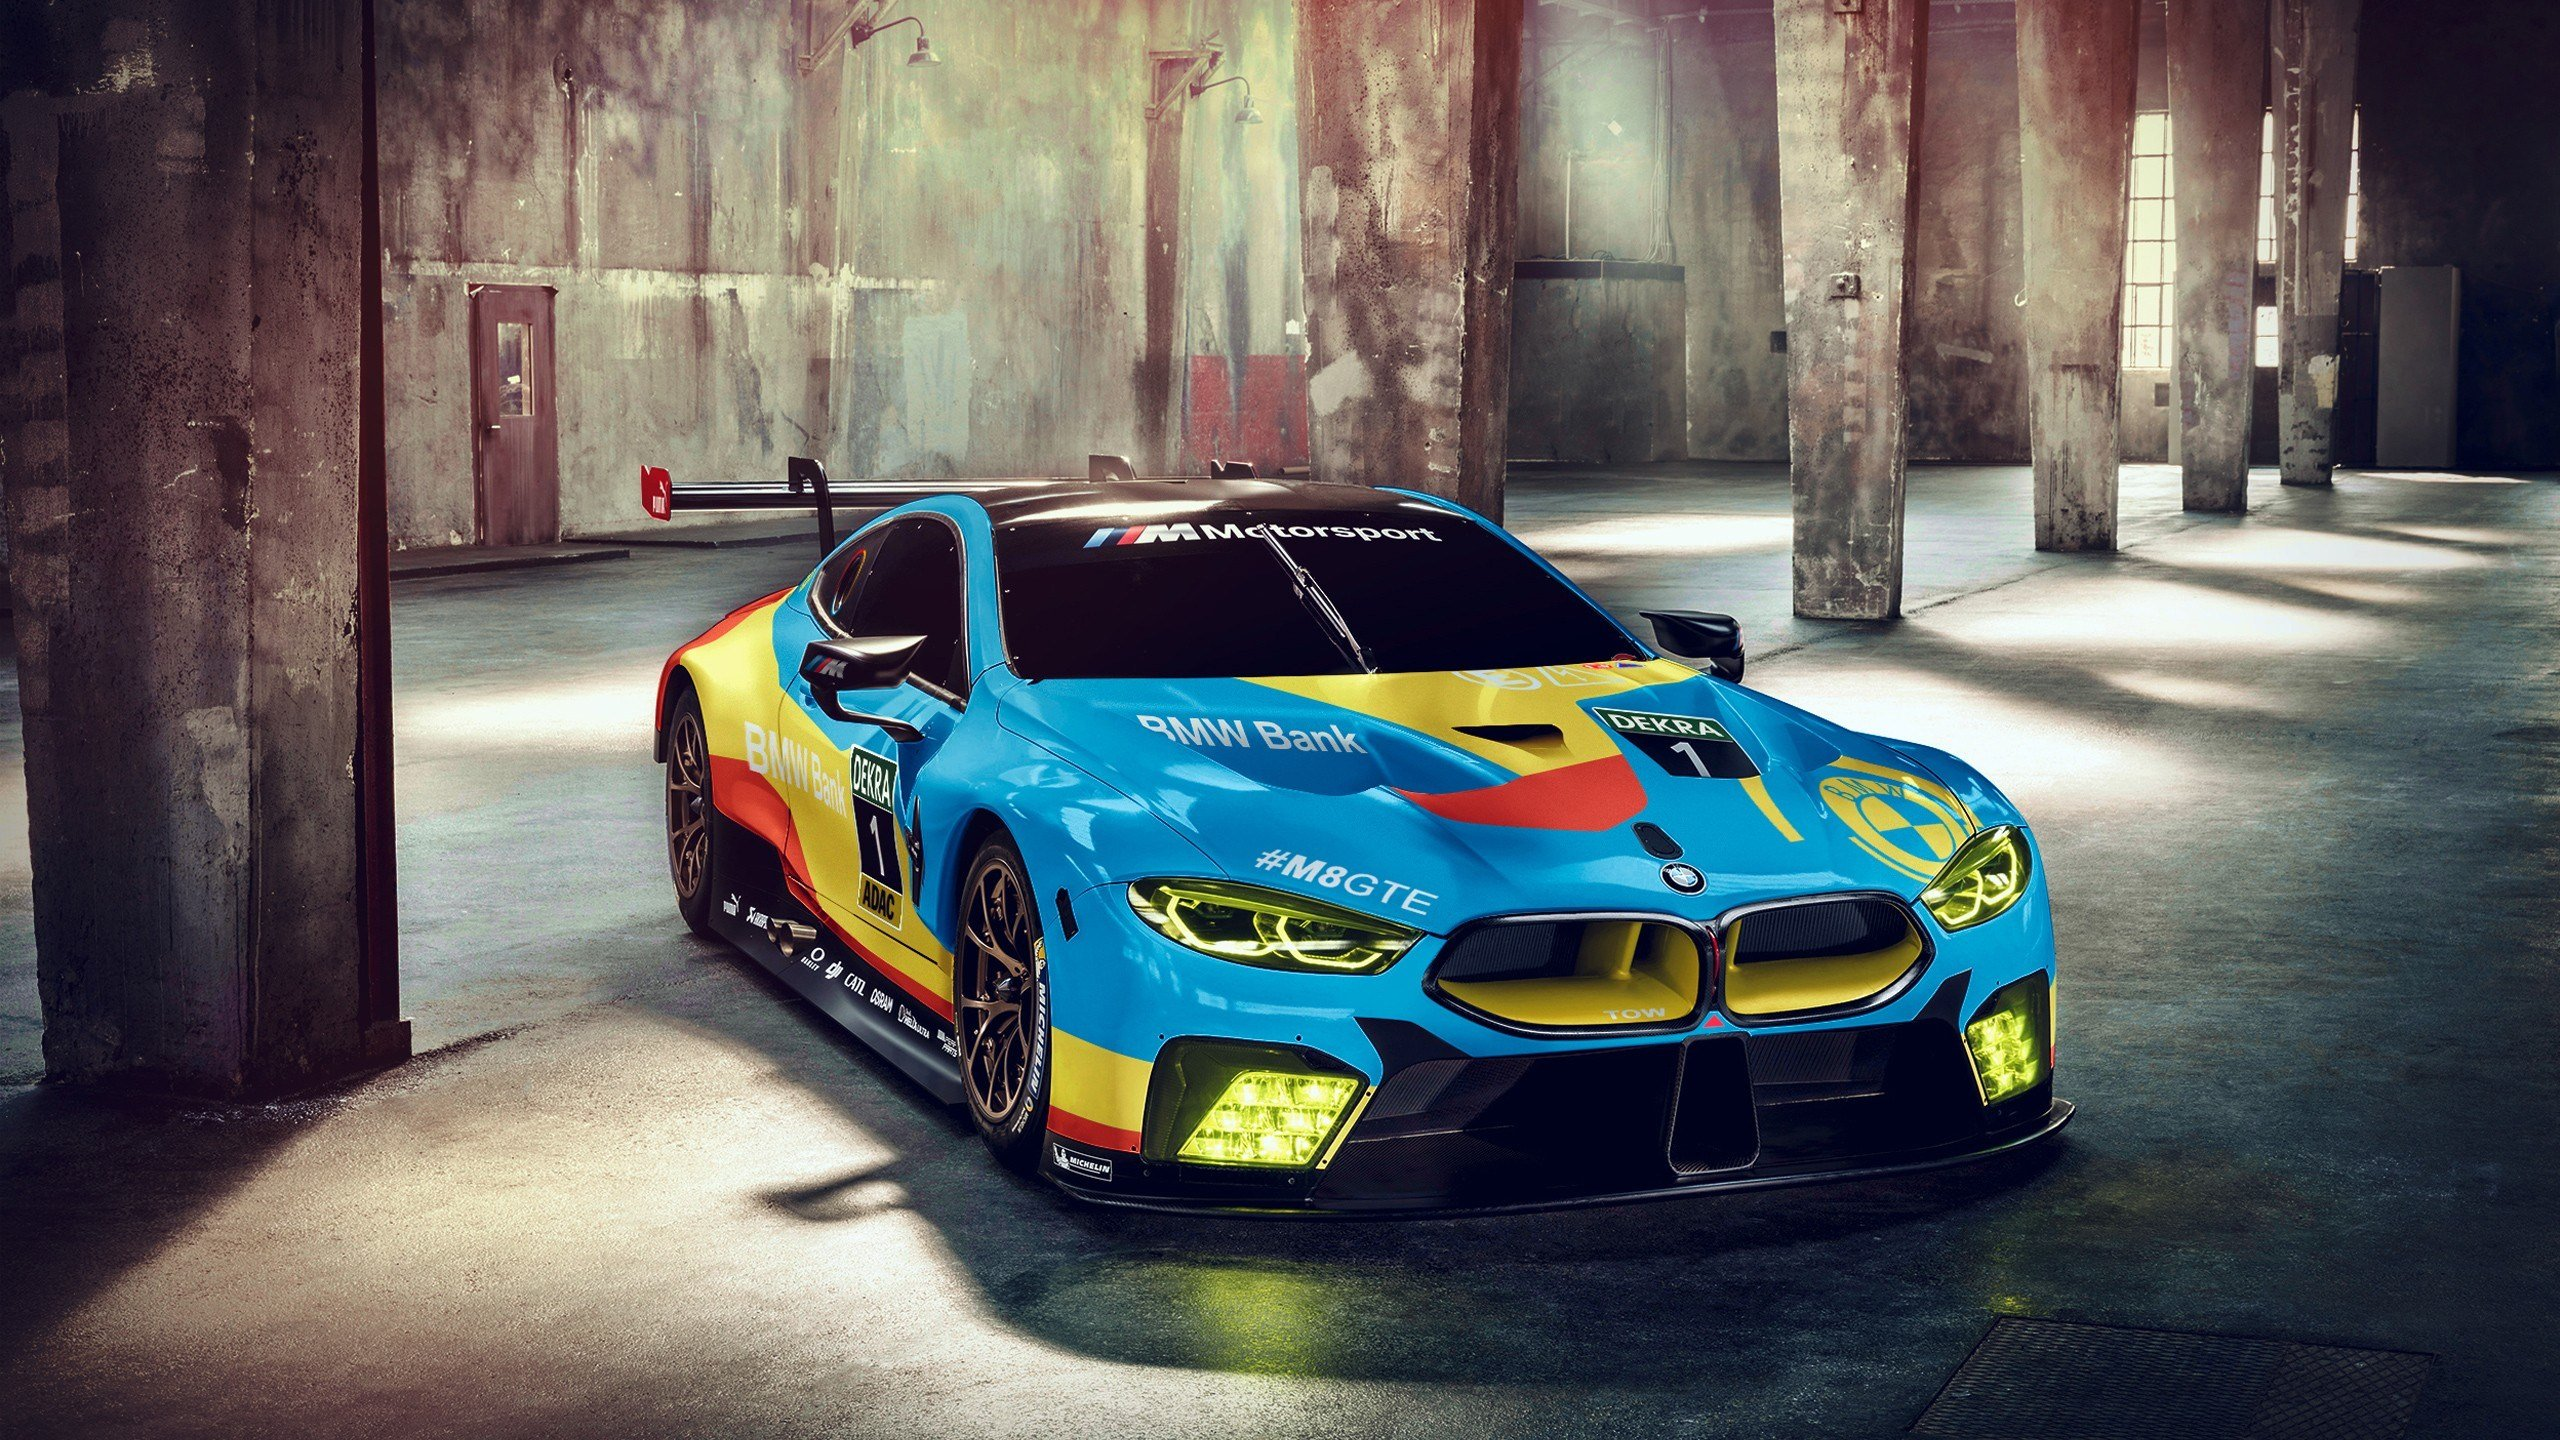 Latest Bmw M8 Gte 2018 Wallpaper Hd Car Wallpapers Id 9270 Free Download